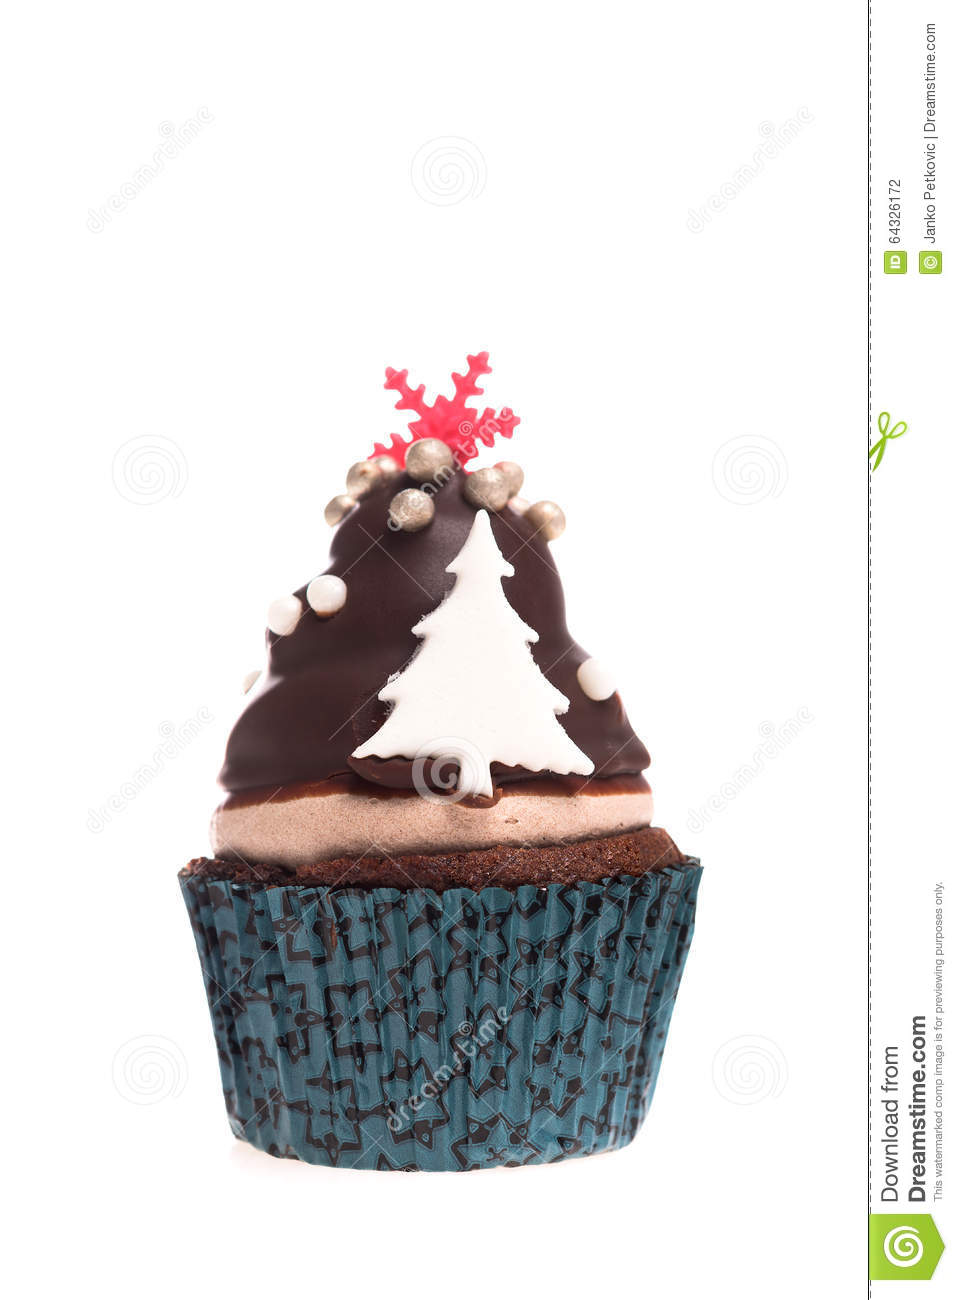 Cup Cake Stock Photo - Image: 64326172